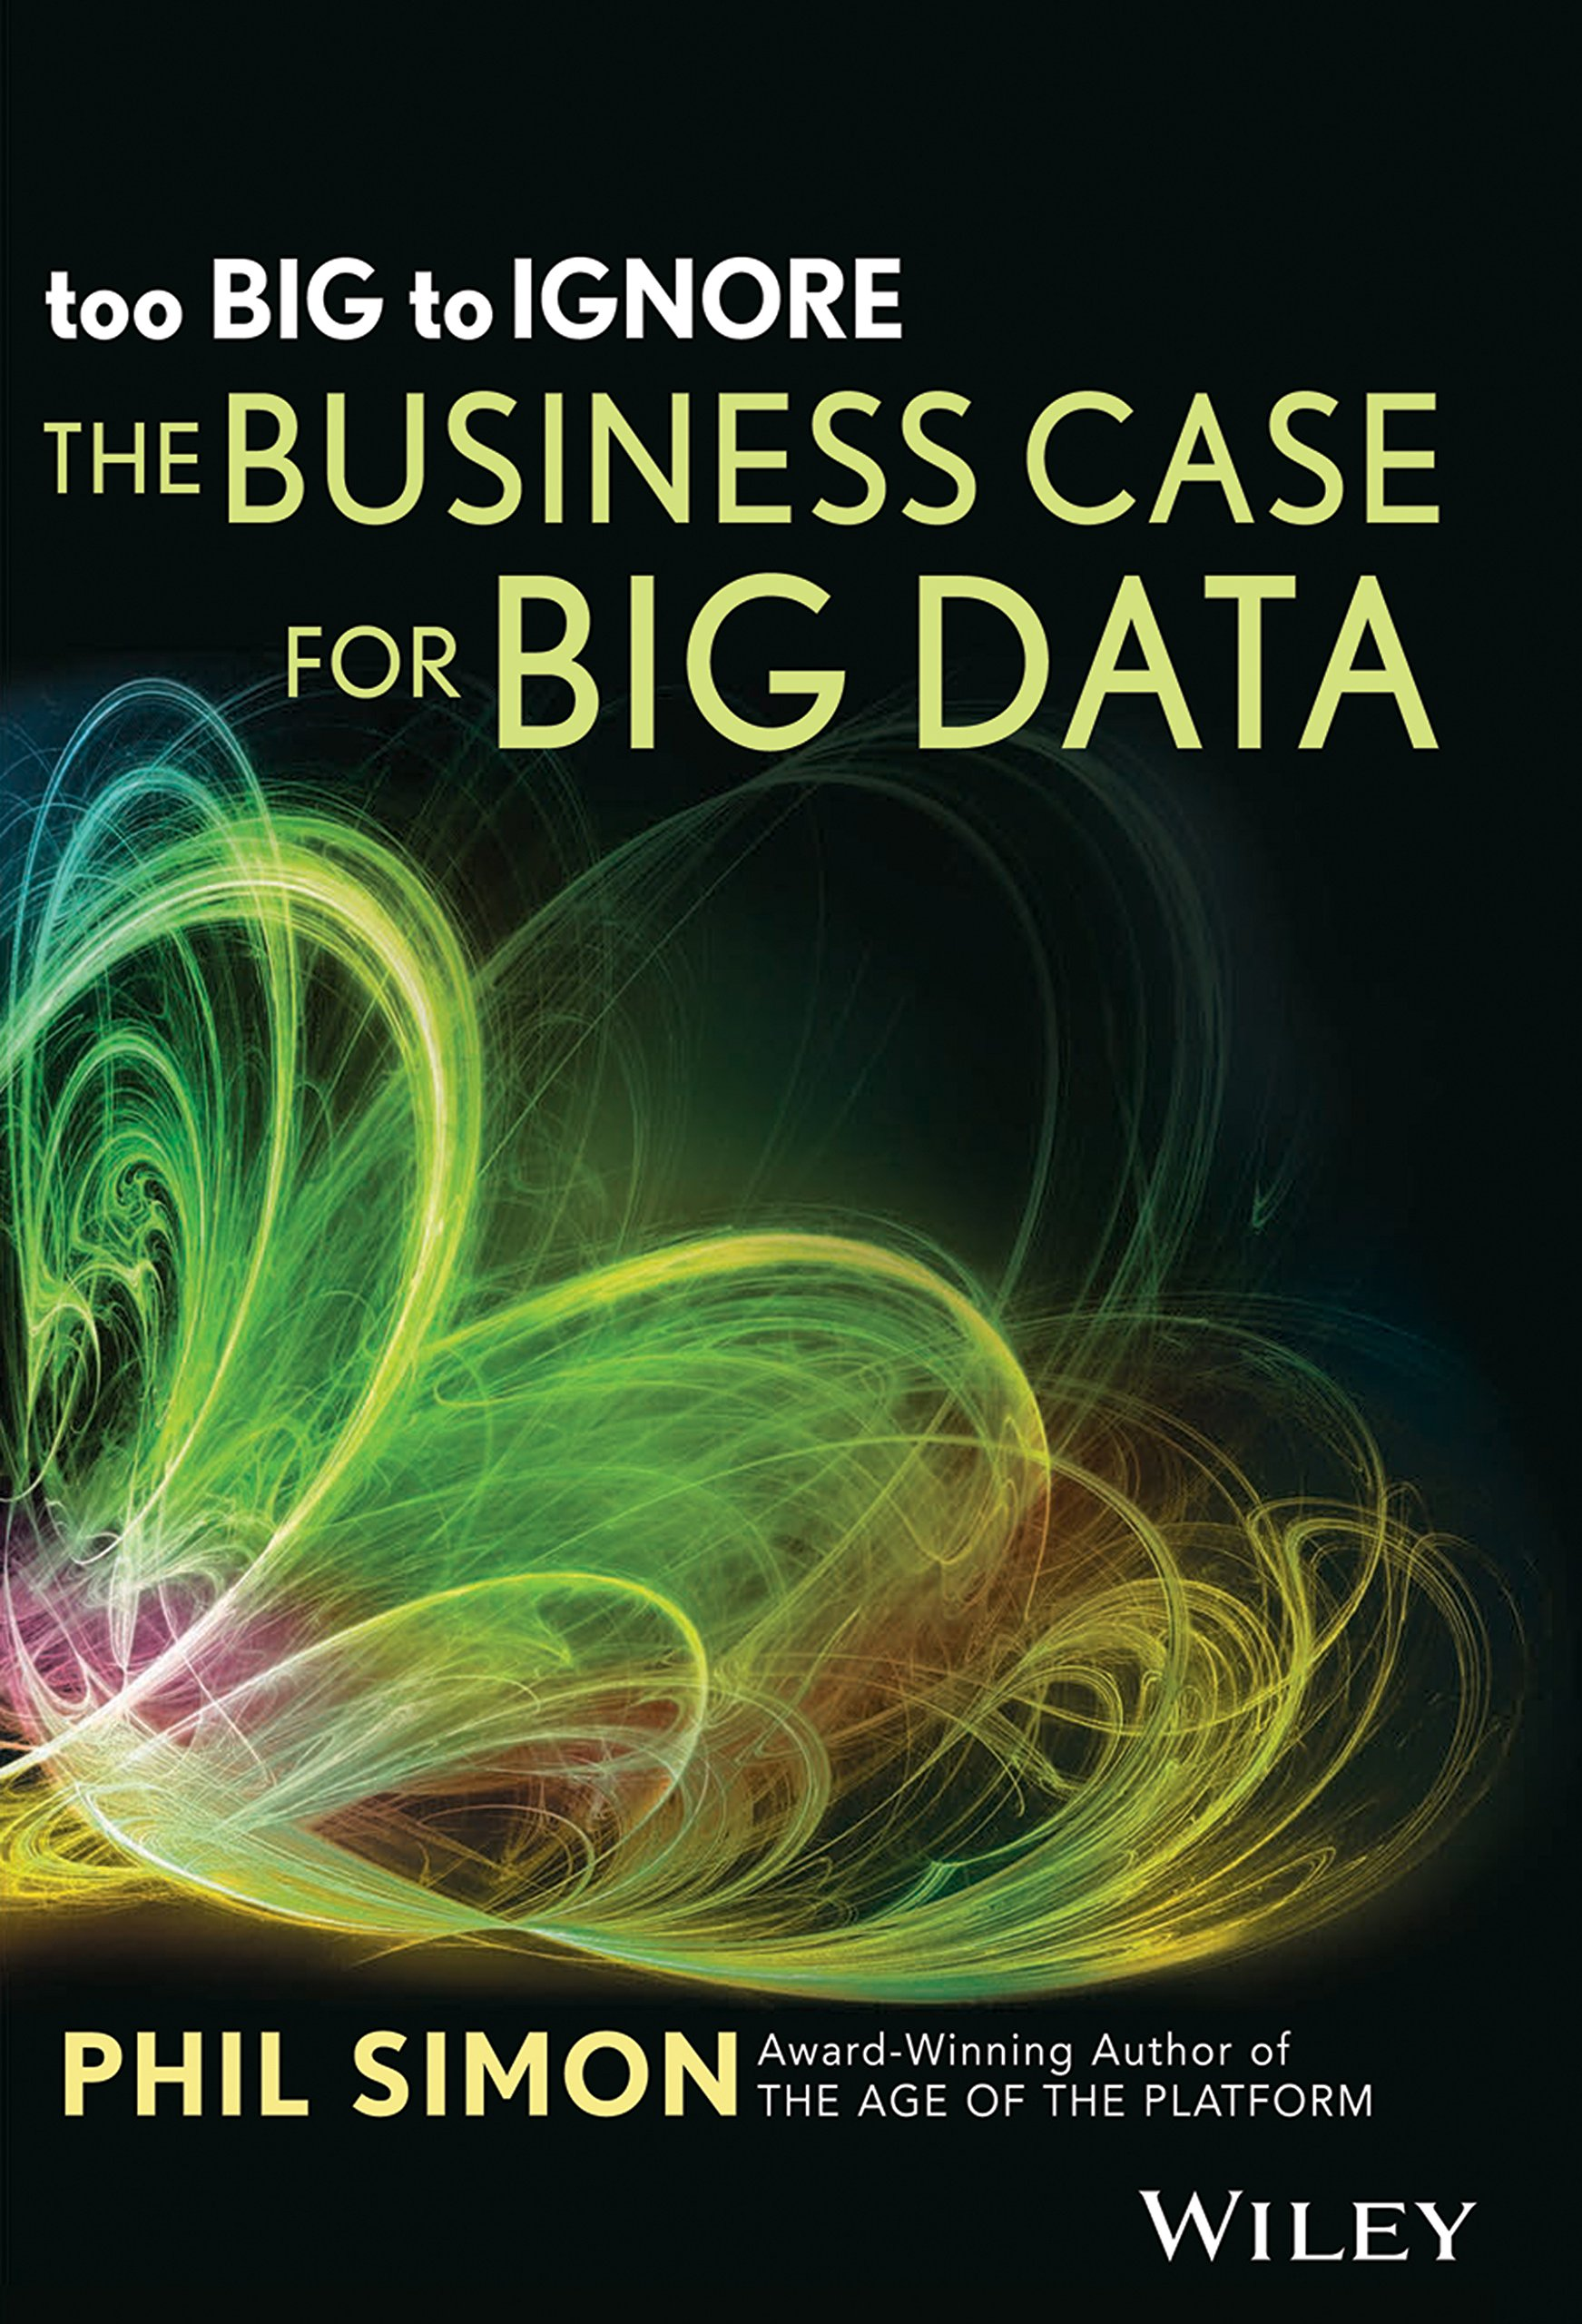 Too Big To Ignore: The Business Case for Big Data pdf